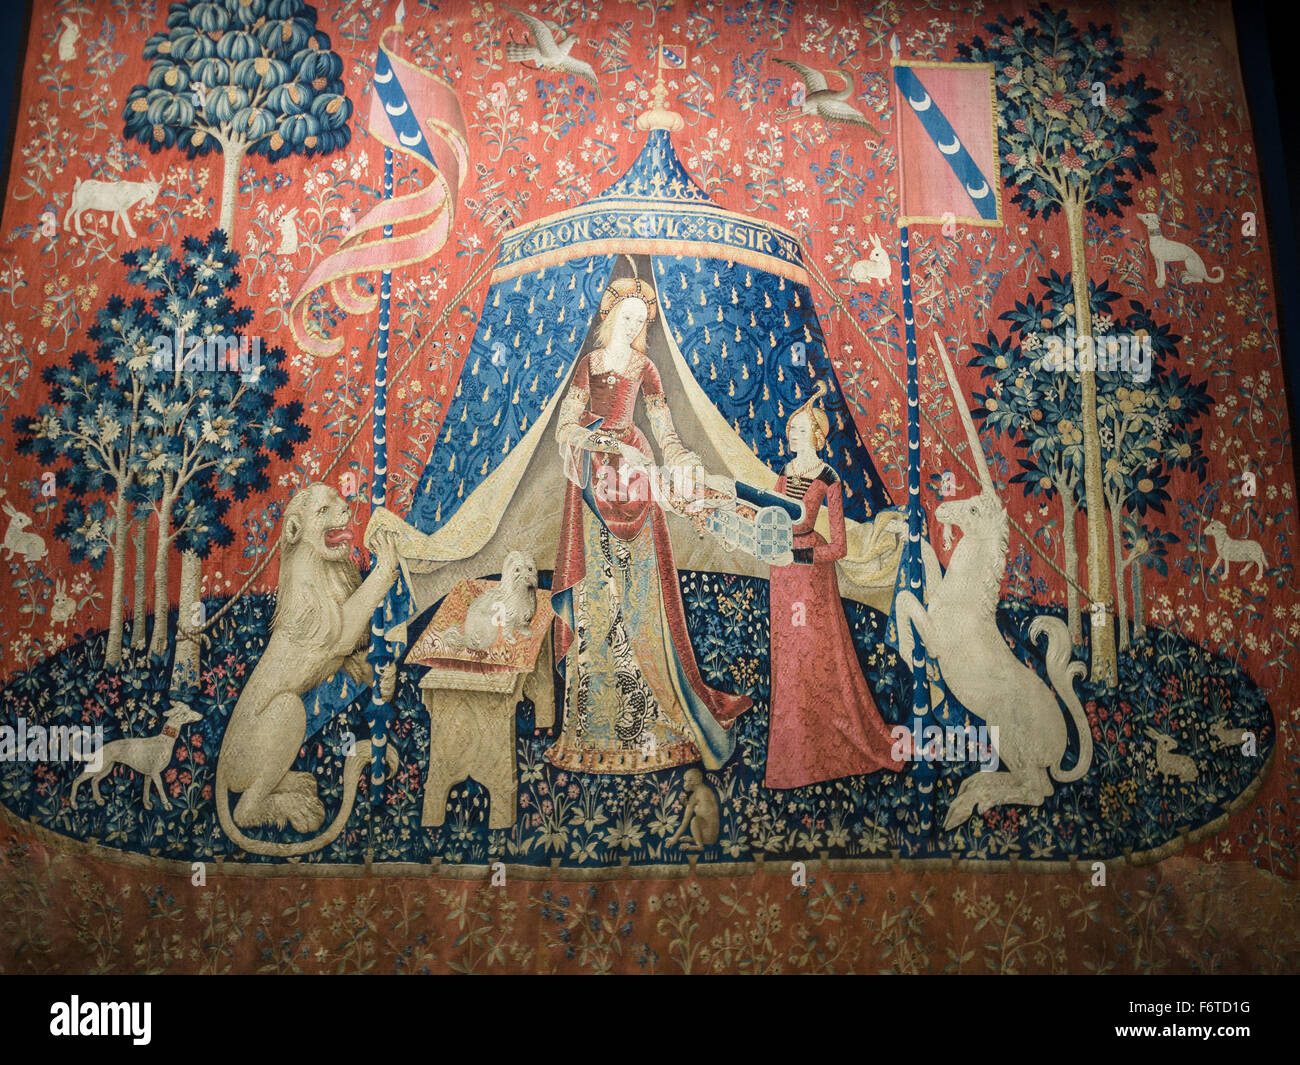 Lady and the Unicorn tapestry: desire. À mon seul désir, my only desire is one of a series of famous woman - Stock Image